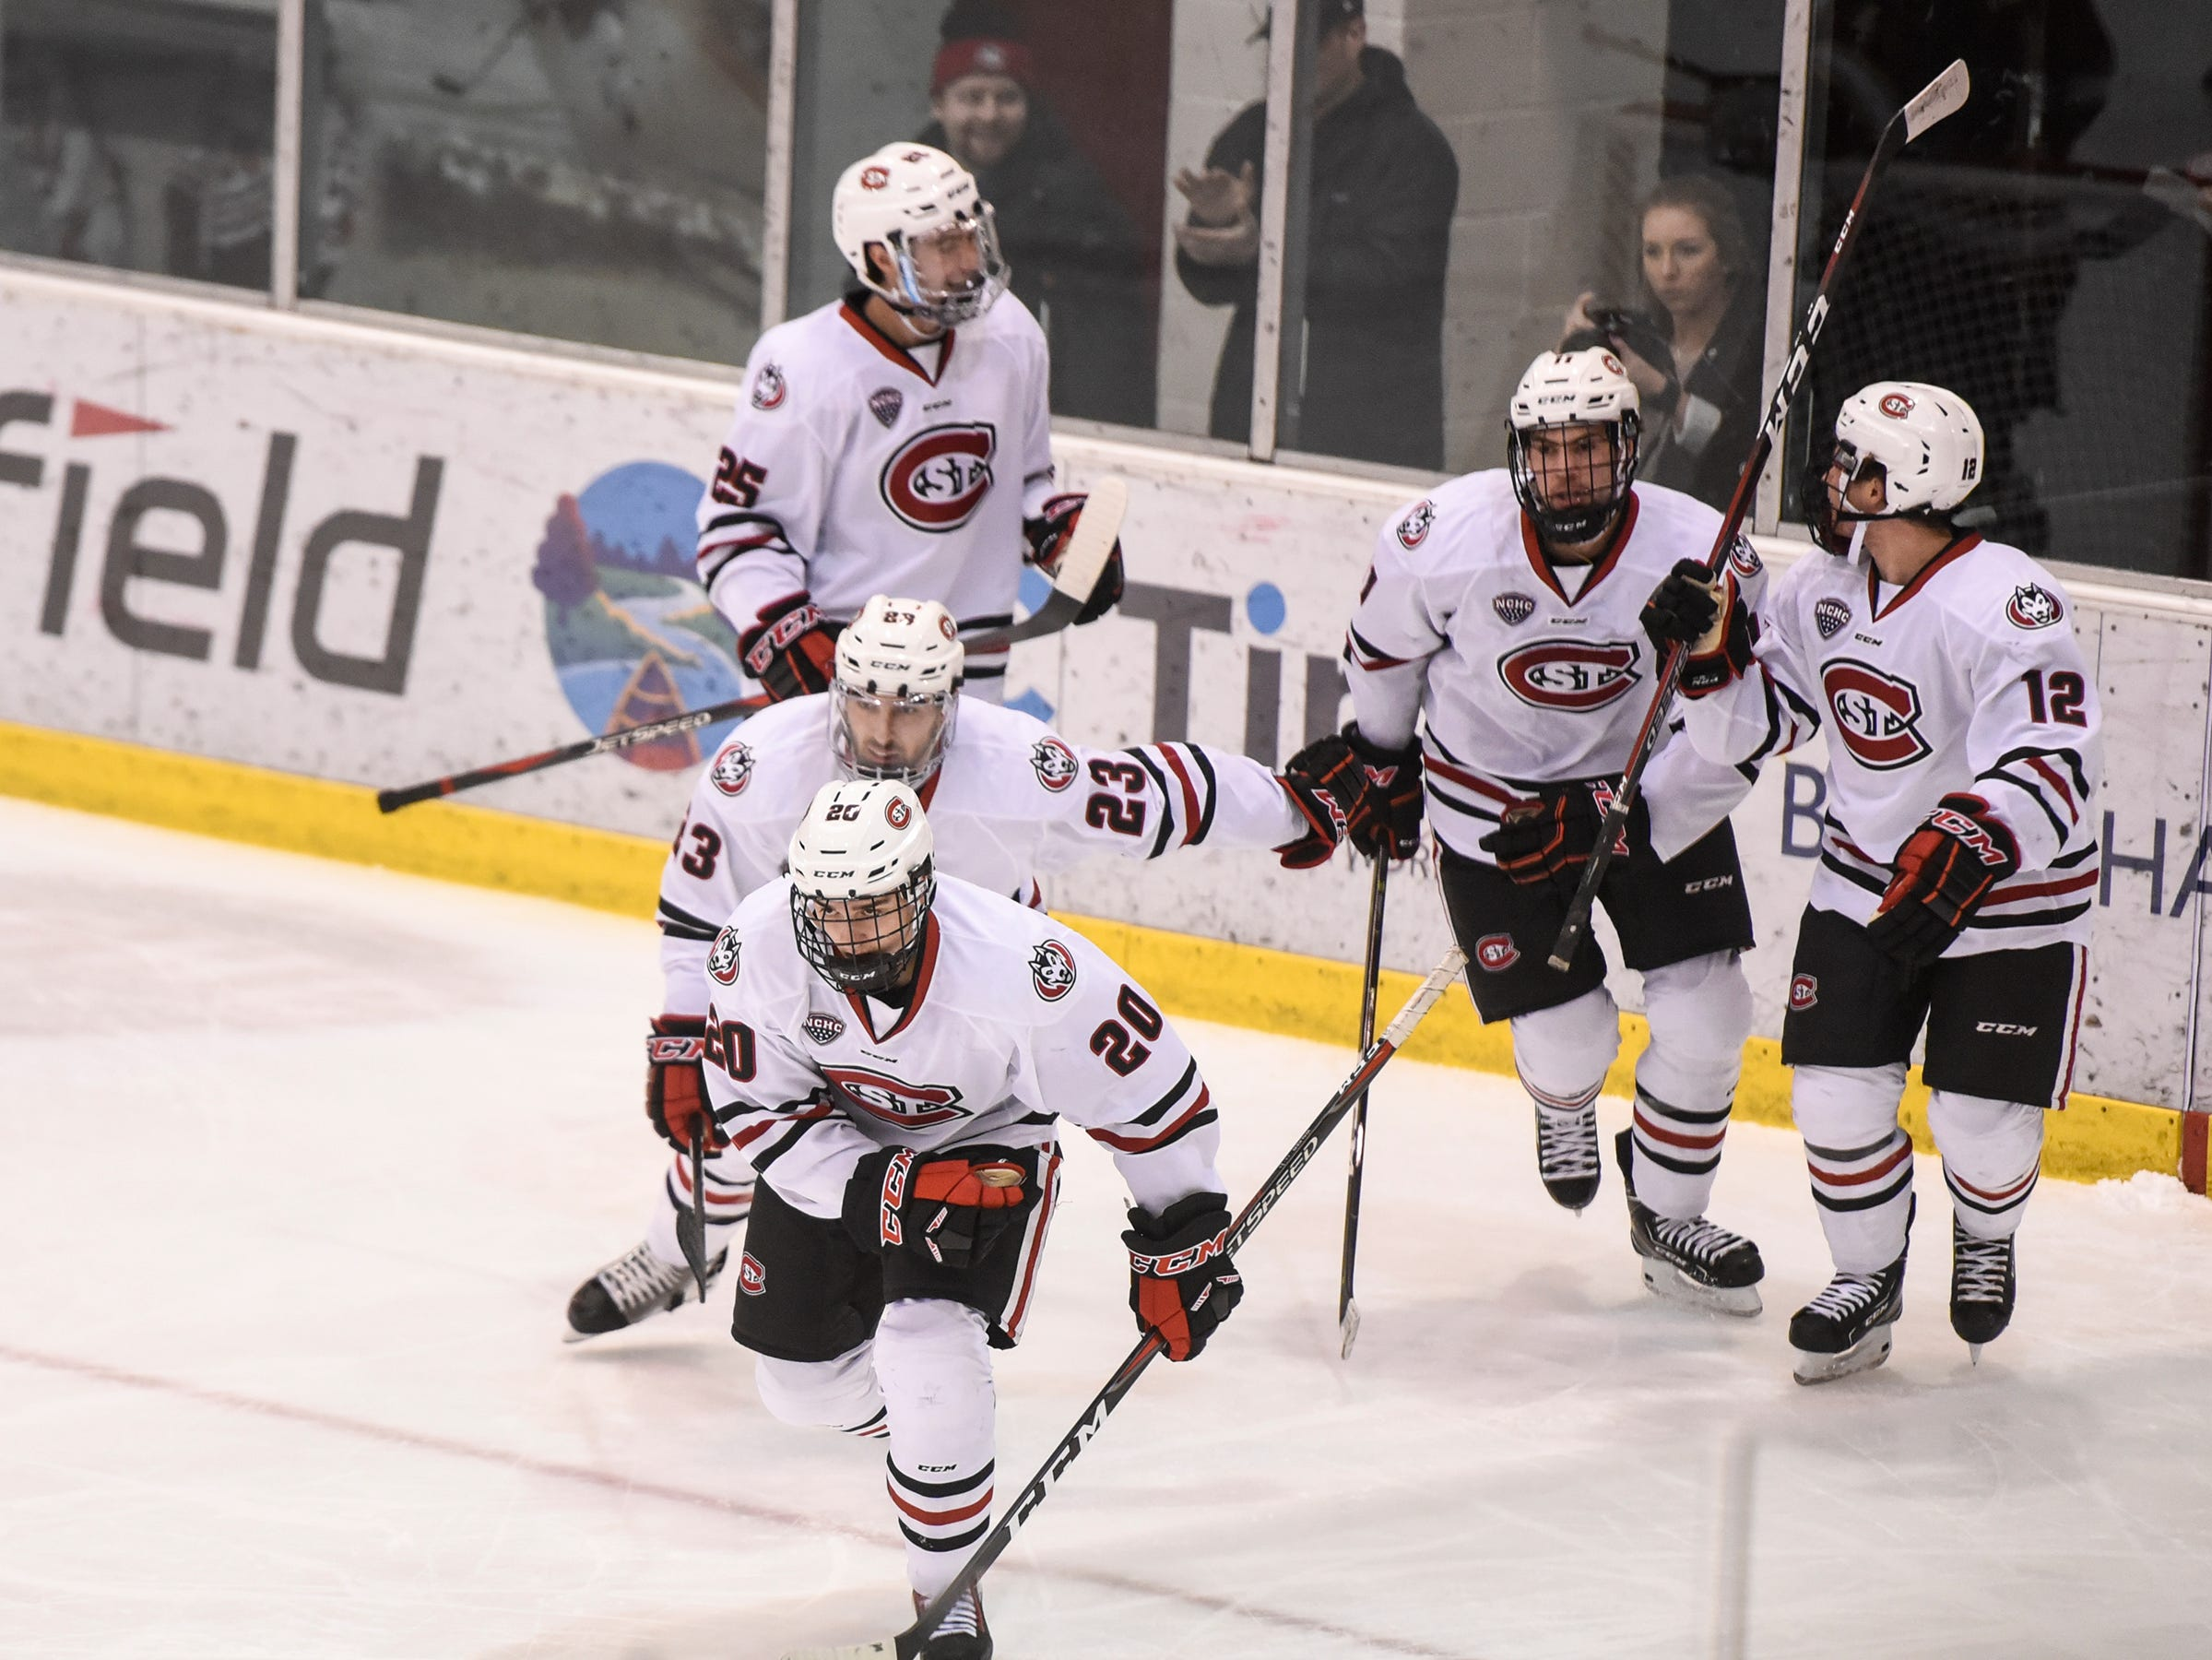 St. Cloud State players celebrate a goal by Nolan Walker during the first period of the Friday, Nov. 9, game against Denver at the Herb Brooks National Hockey Center in St. Cloud.